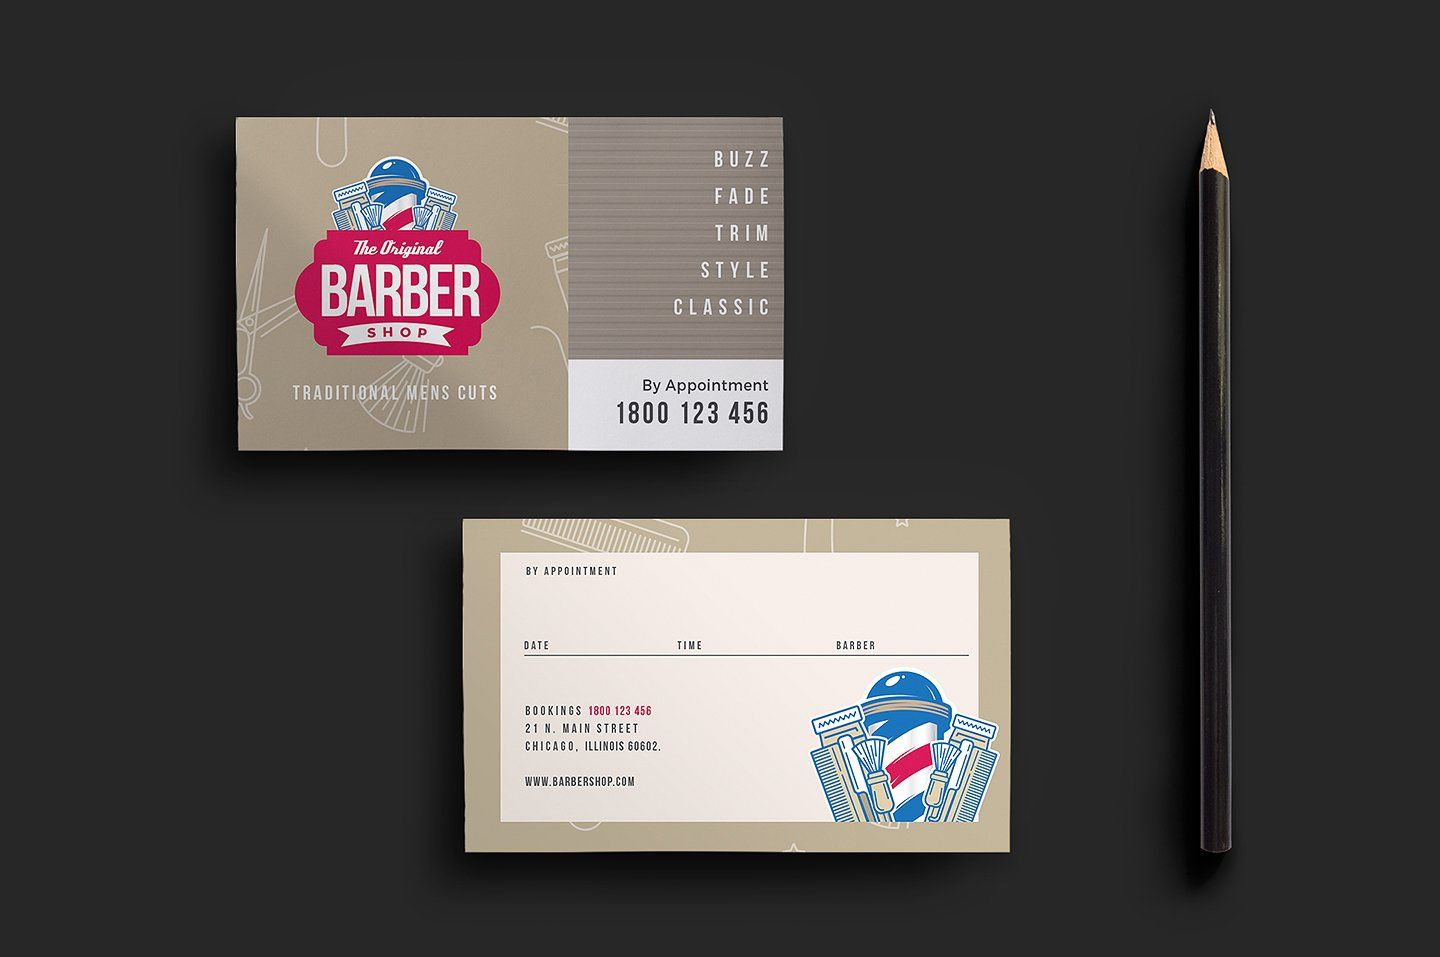 The Outstanding 14 Appointment Card Designs Design Trends Premium Psd With Medica Free Business Card Templates Visiting Card Templates Card Templates Free